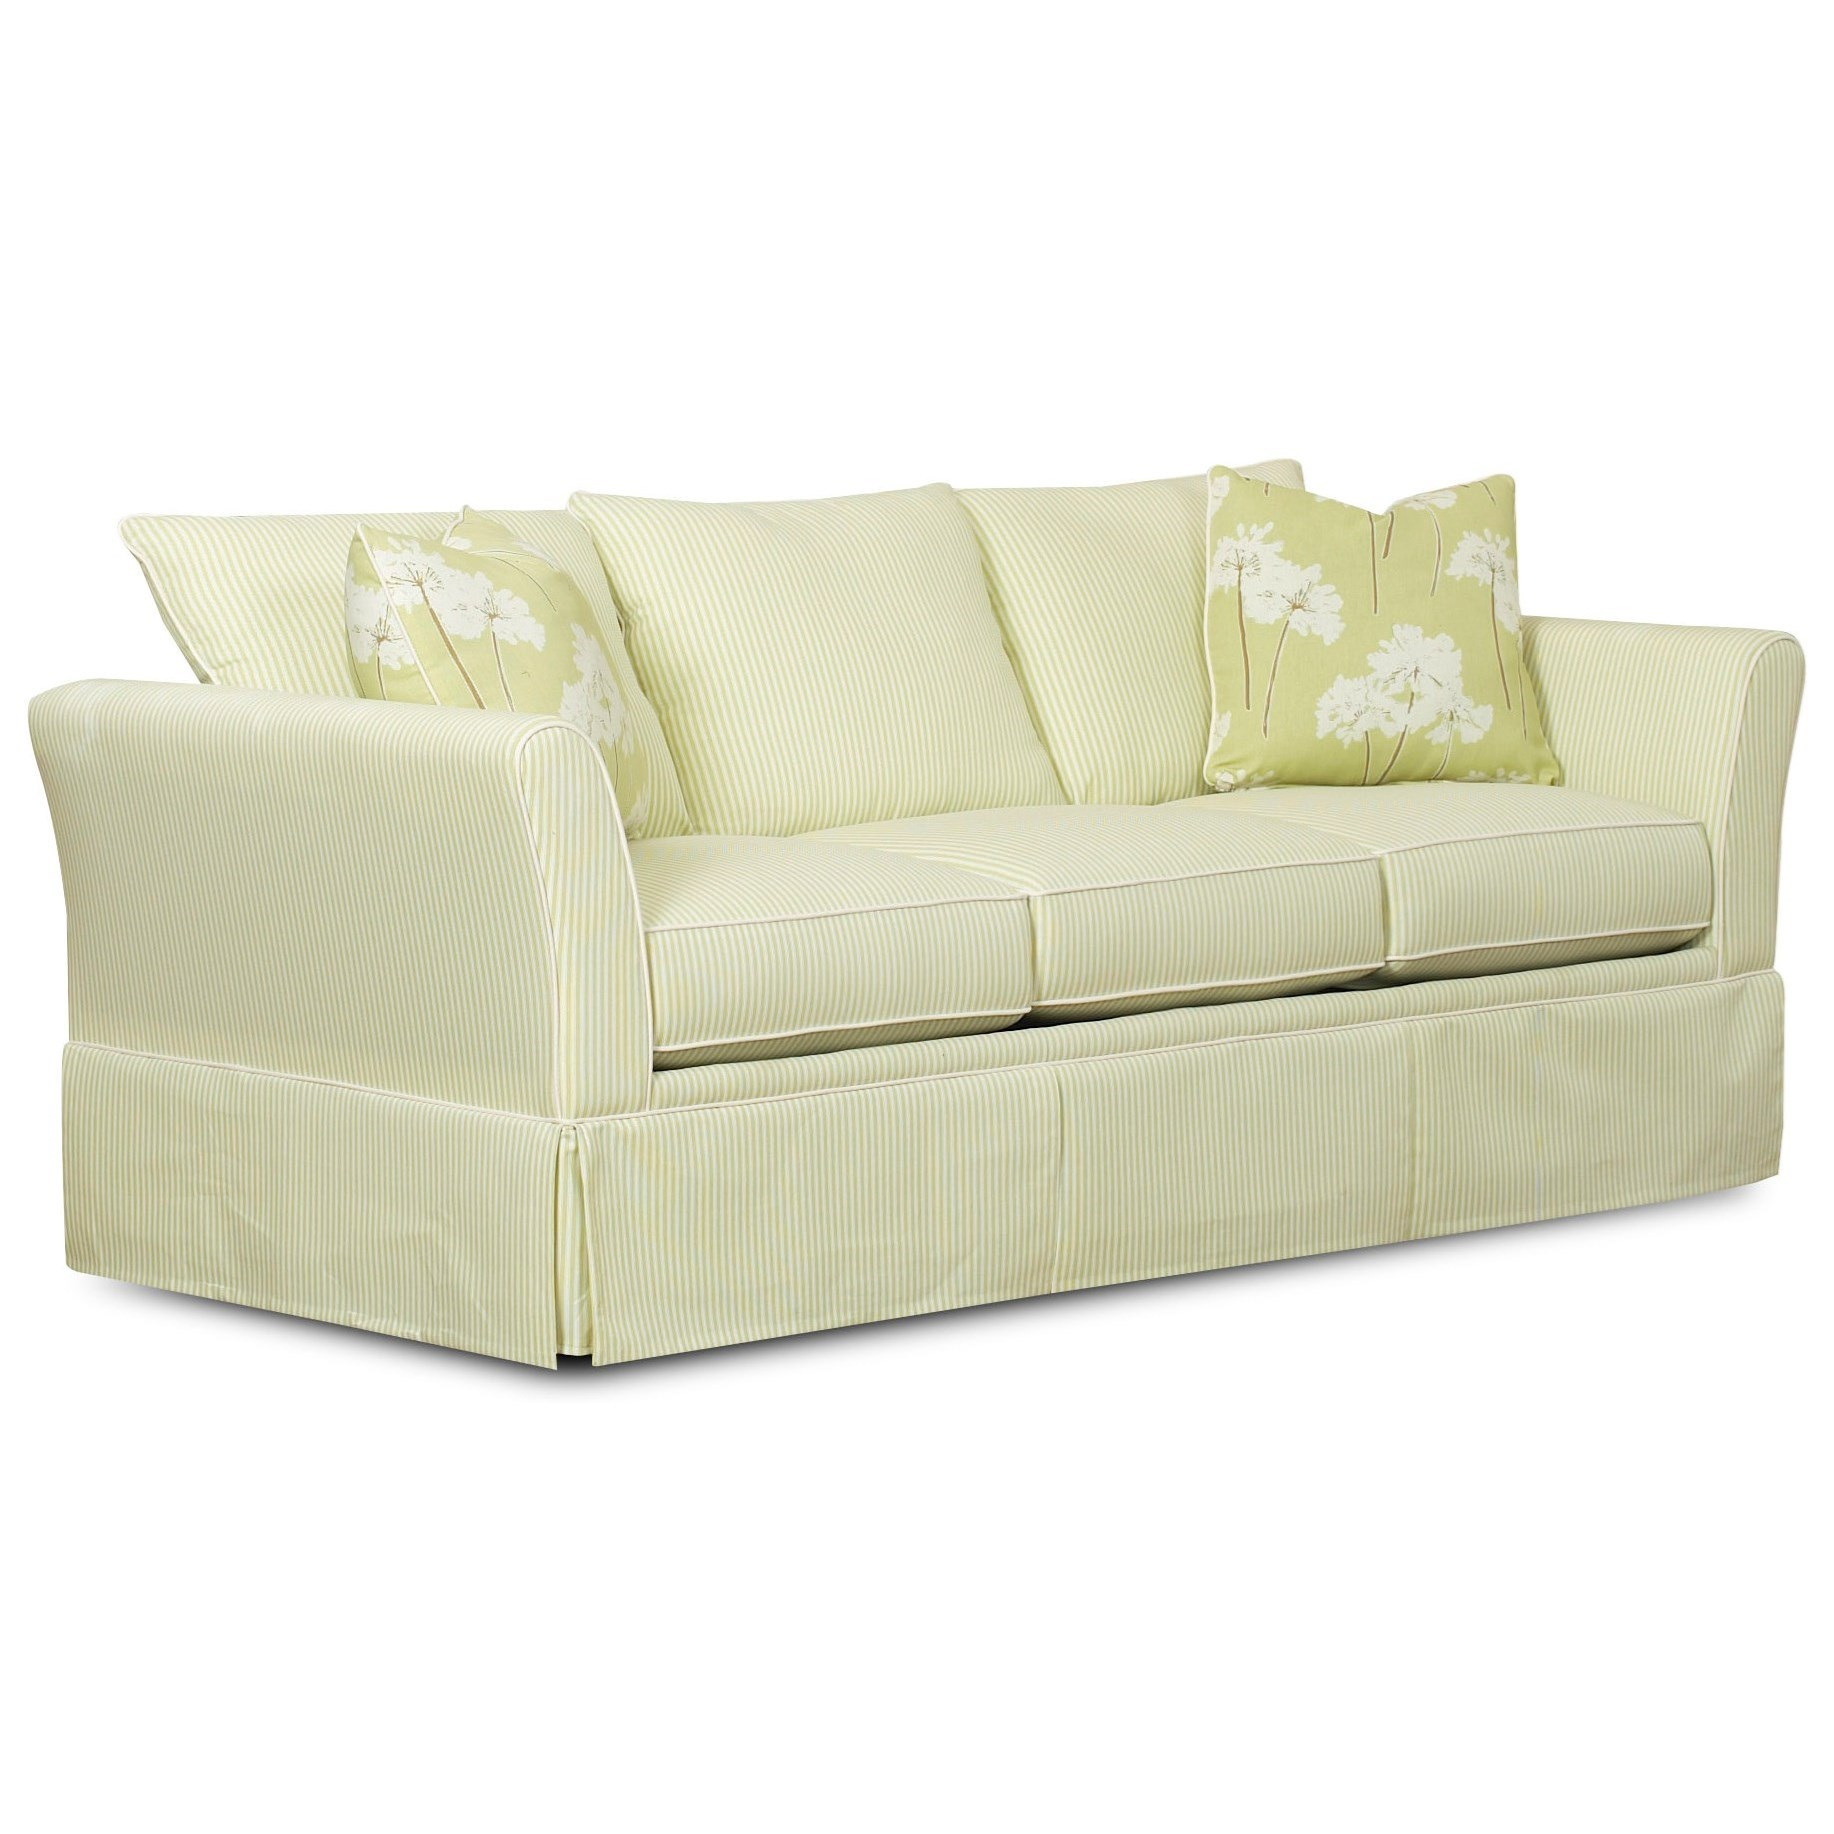 Klaussner Ramona K81600 Aqsl Queen Air Dream Sleeper Sofa